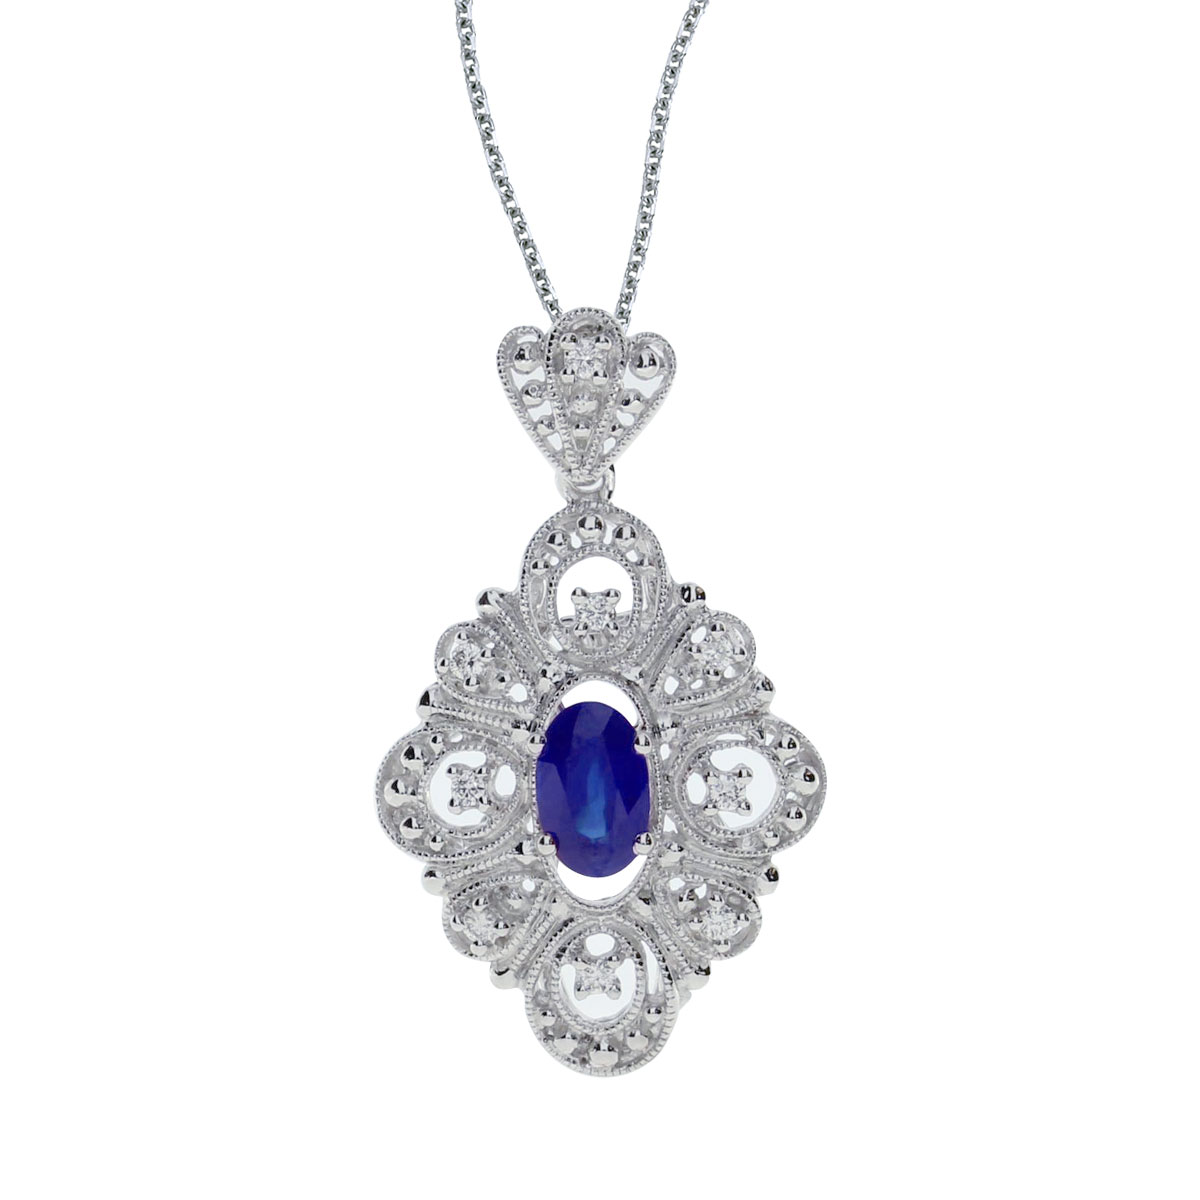 This beautiful 14k white gold pendant features a bright 6x4 mm oval sapphire and .08 carats of sh...